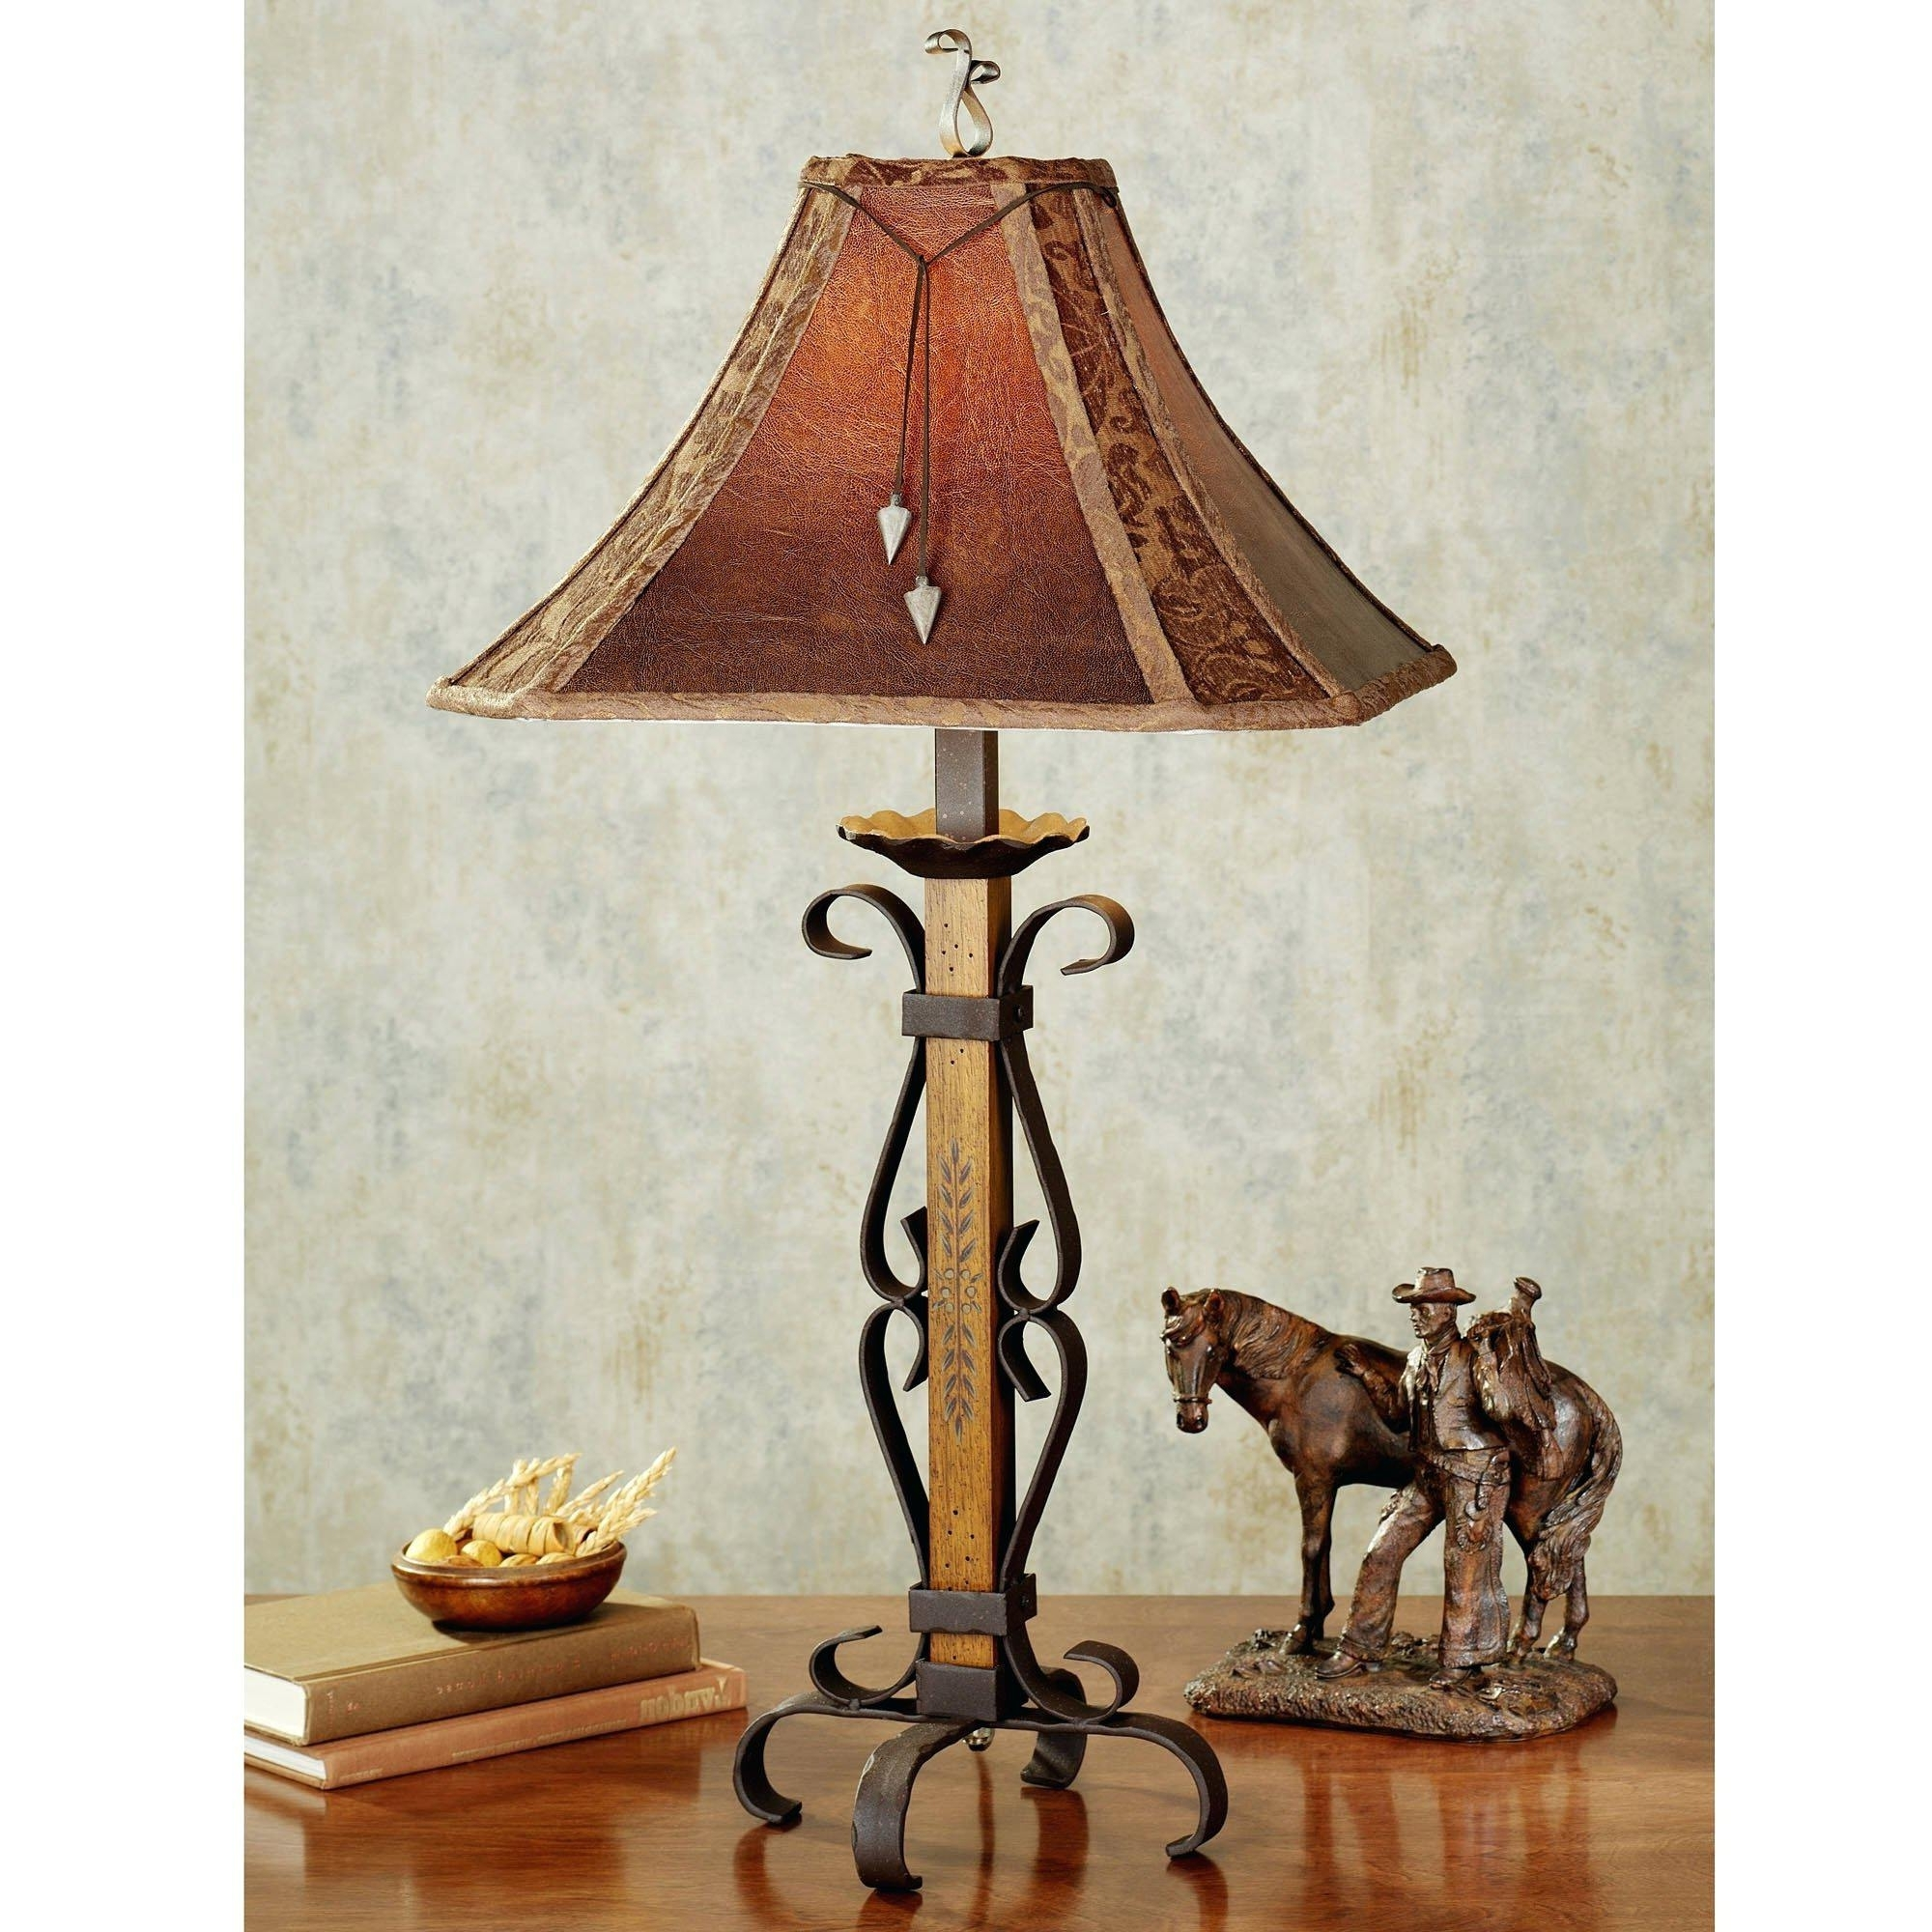 Well Liked Top 68 Skookum Tuscan Style Table Lamps Old World Vintage For Living Intended For Tuscan Table Lamps For Living Room (View 6 of 15)